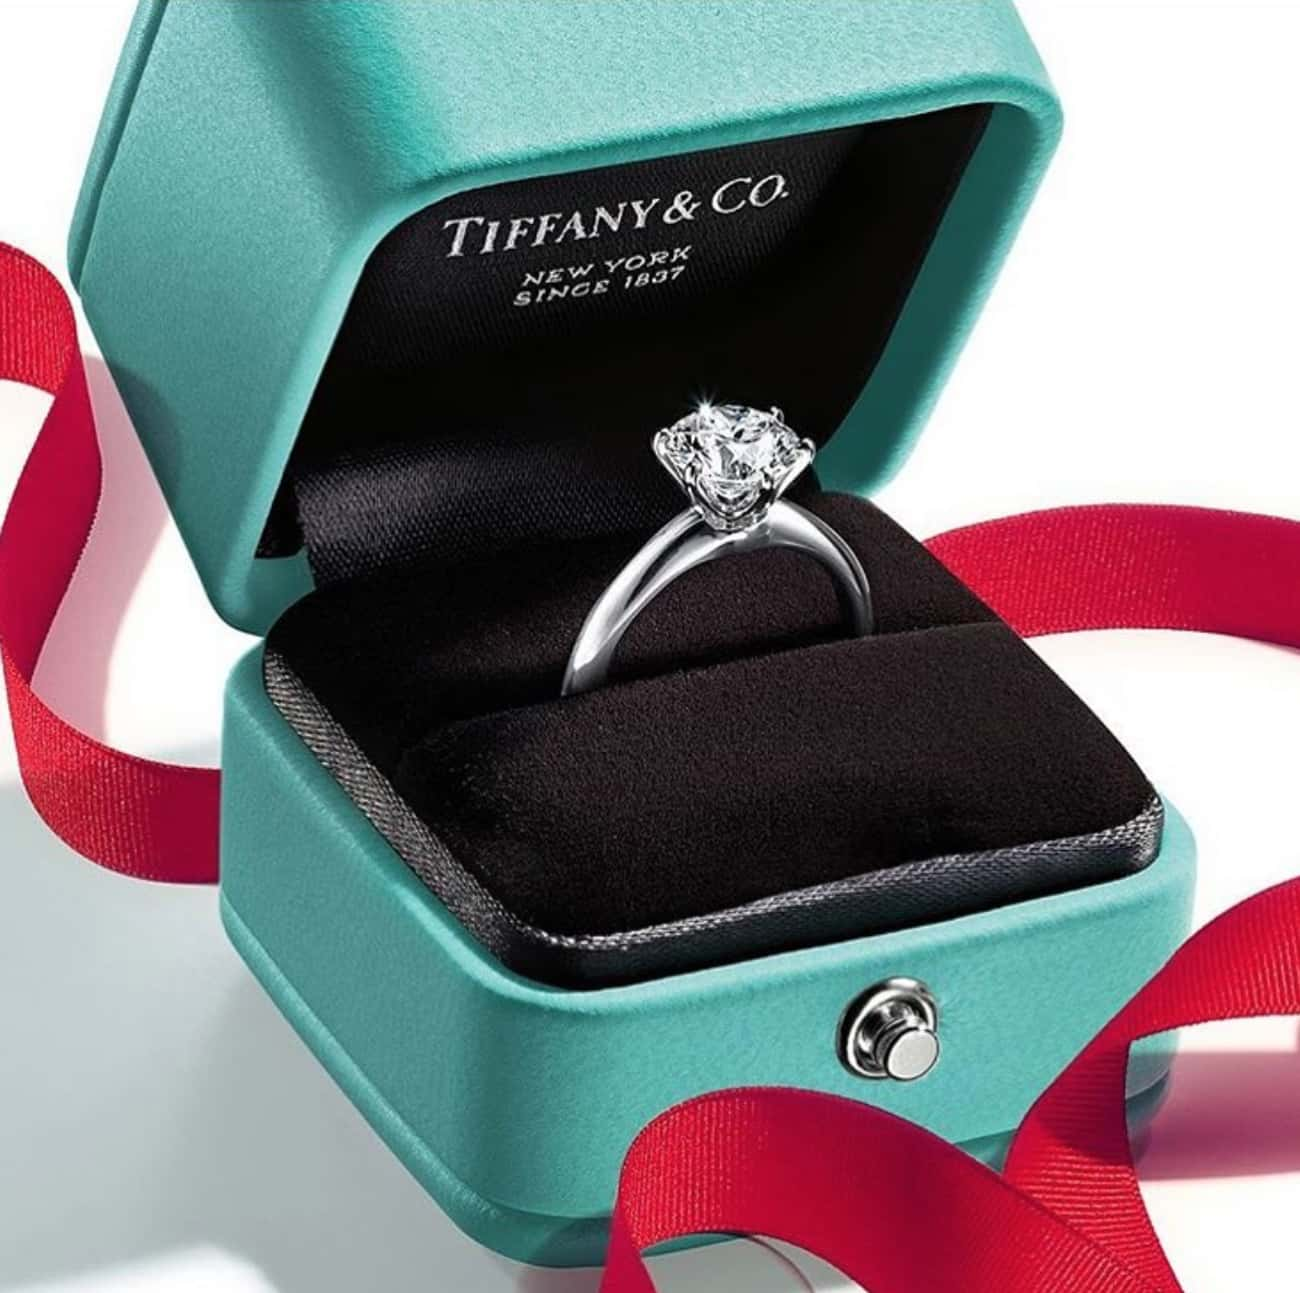 Tiffany & Co. is listed (or ranked) 2 on the list The Best Jewelry Brands